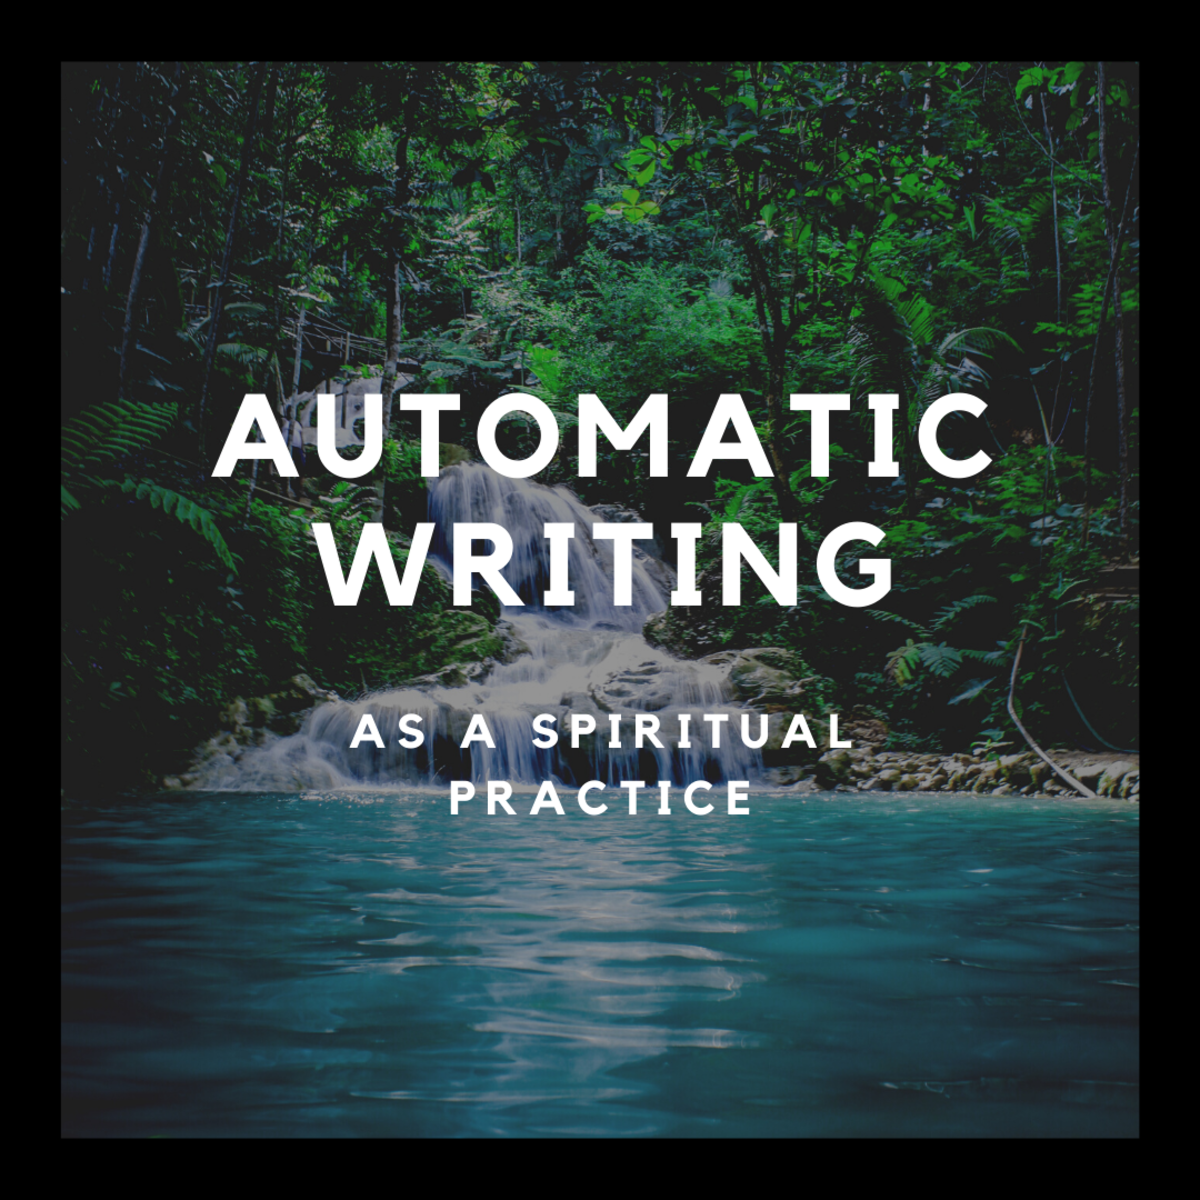 Automatic Writing as a Spiritual Practice